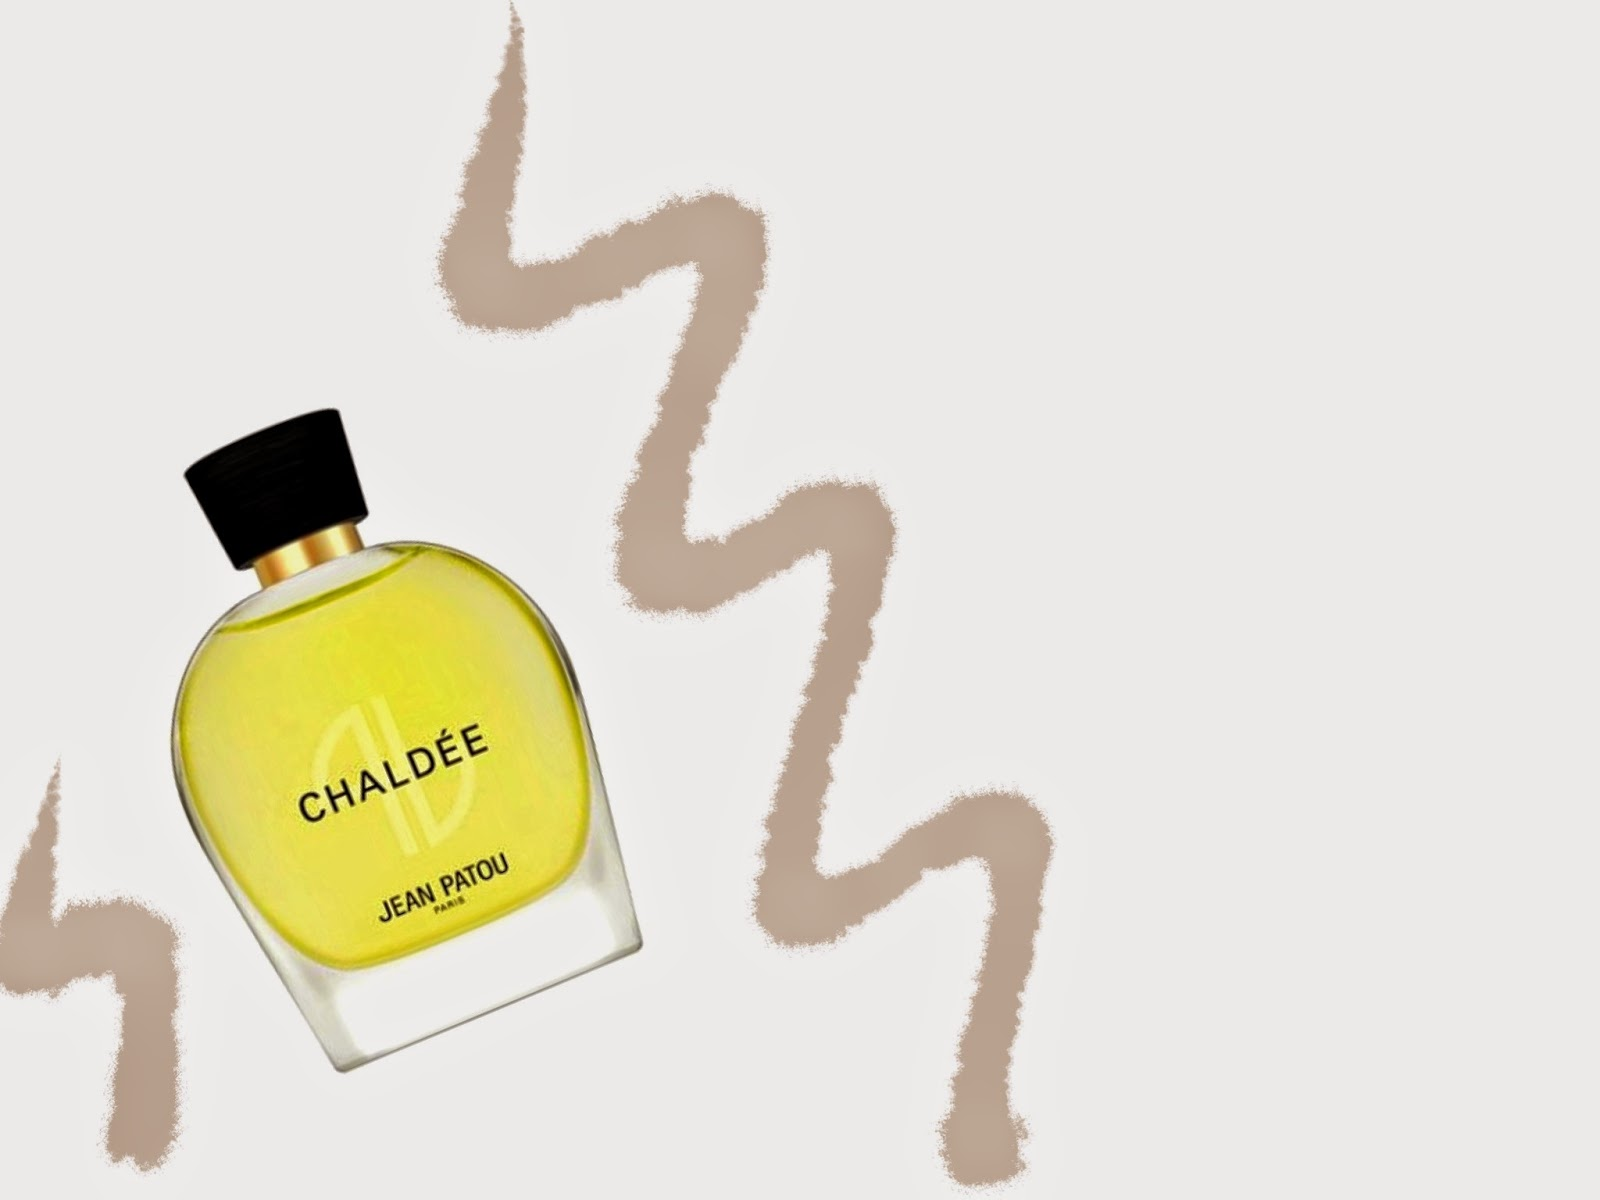 persolaise a perfume blog best perfumes of a time for  chaldee by henri almeras and thomas fontaine jean patou i was smitten when i first tried this and i remain smitten still retro in all the best ways